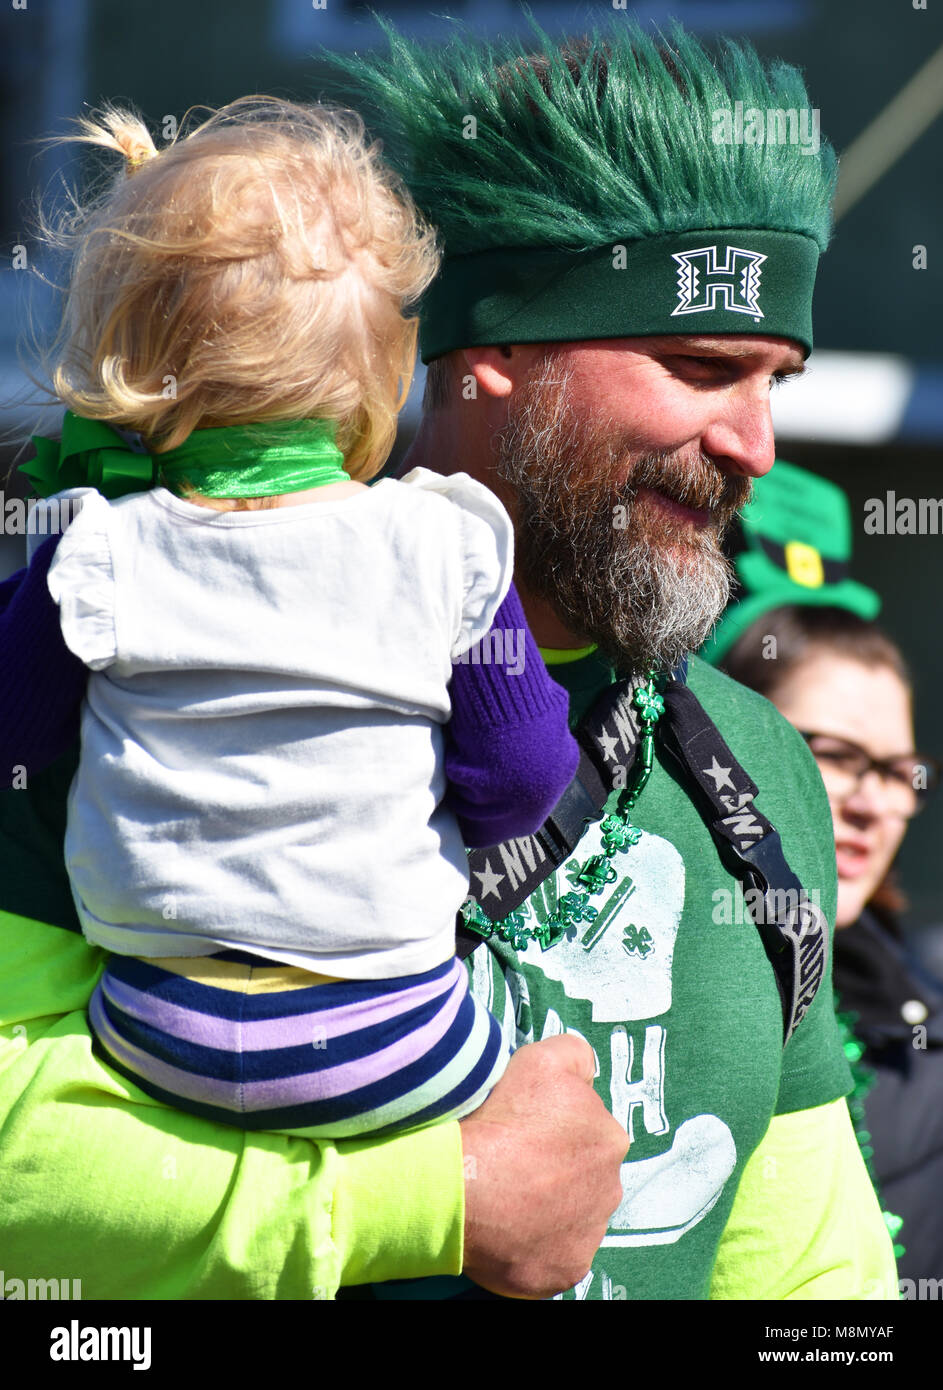 Man holding his young daughter while walking in the Bellingham, Washington St. Patrick's Day Parade on March - Stock Image